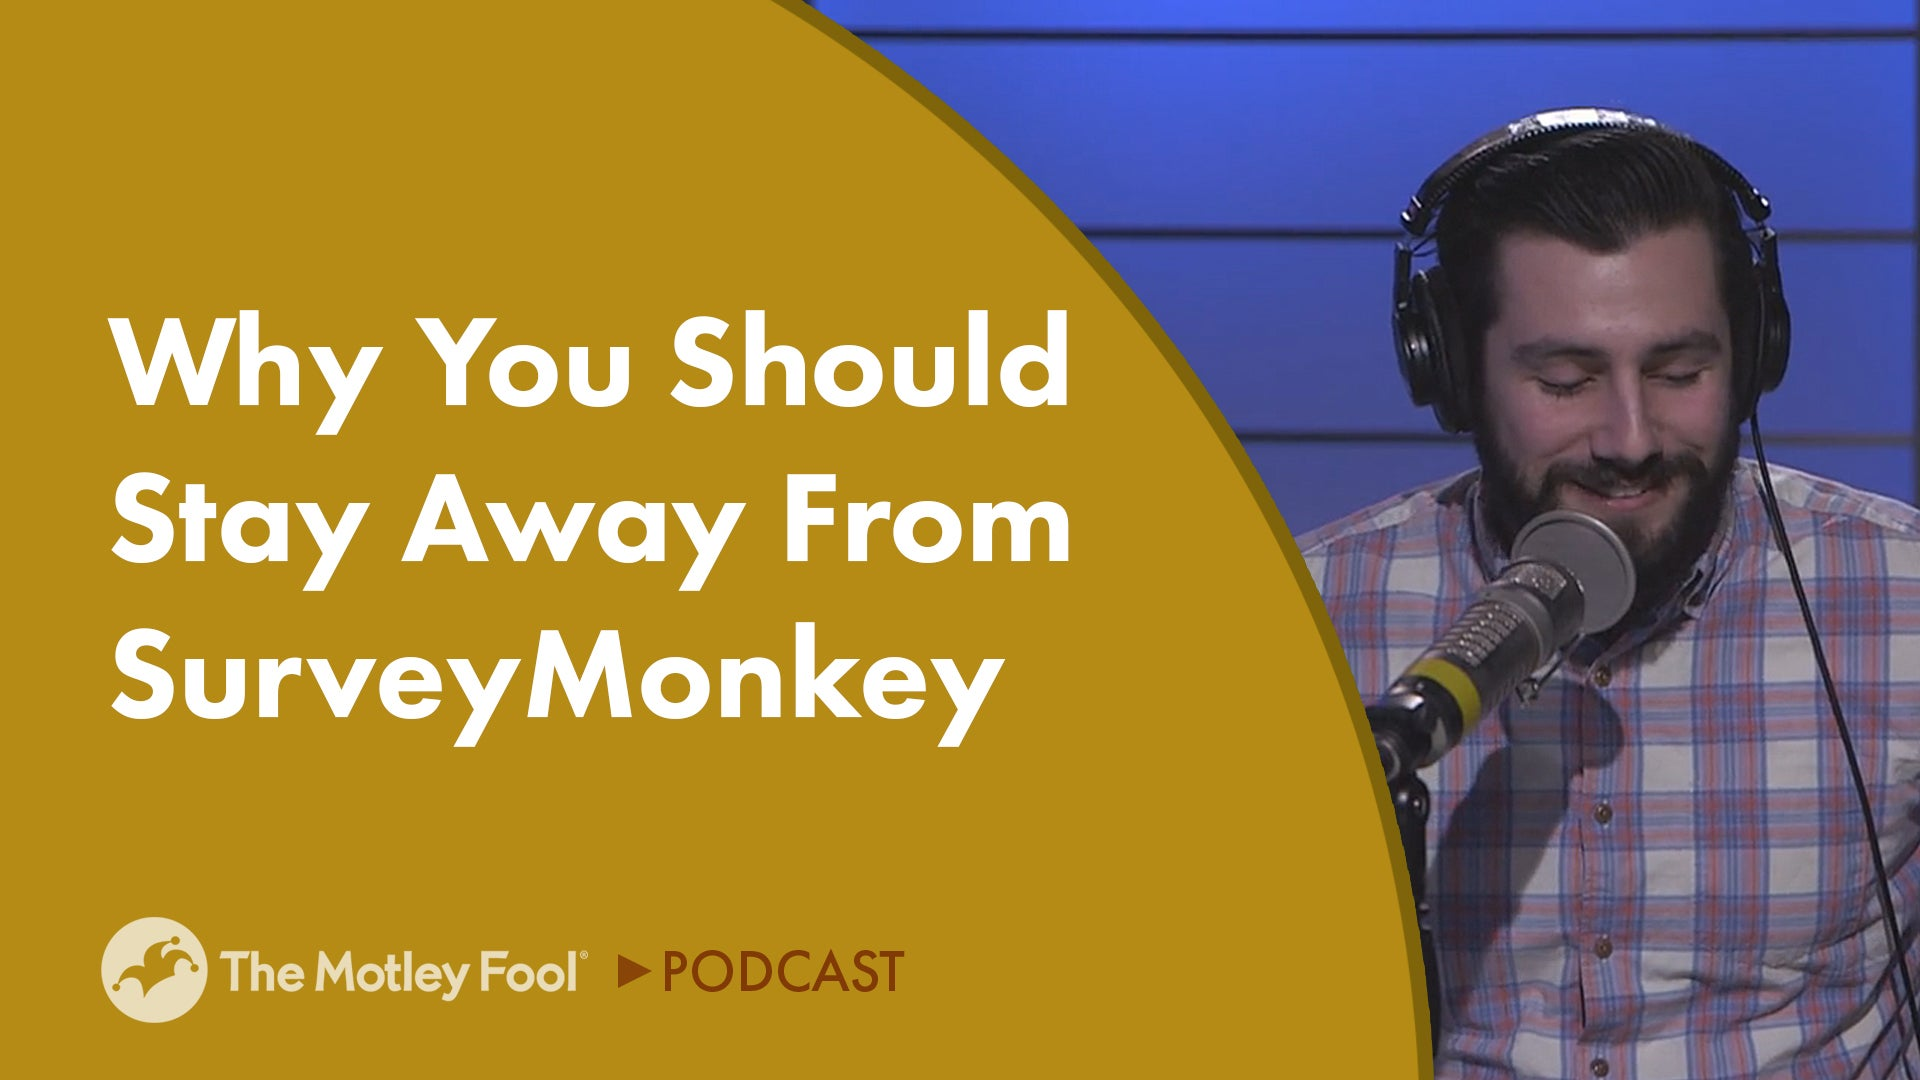 QnA VBage Why You Should Stay Away From SurveyMonkey